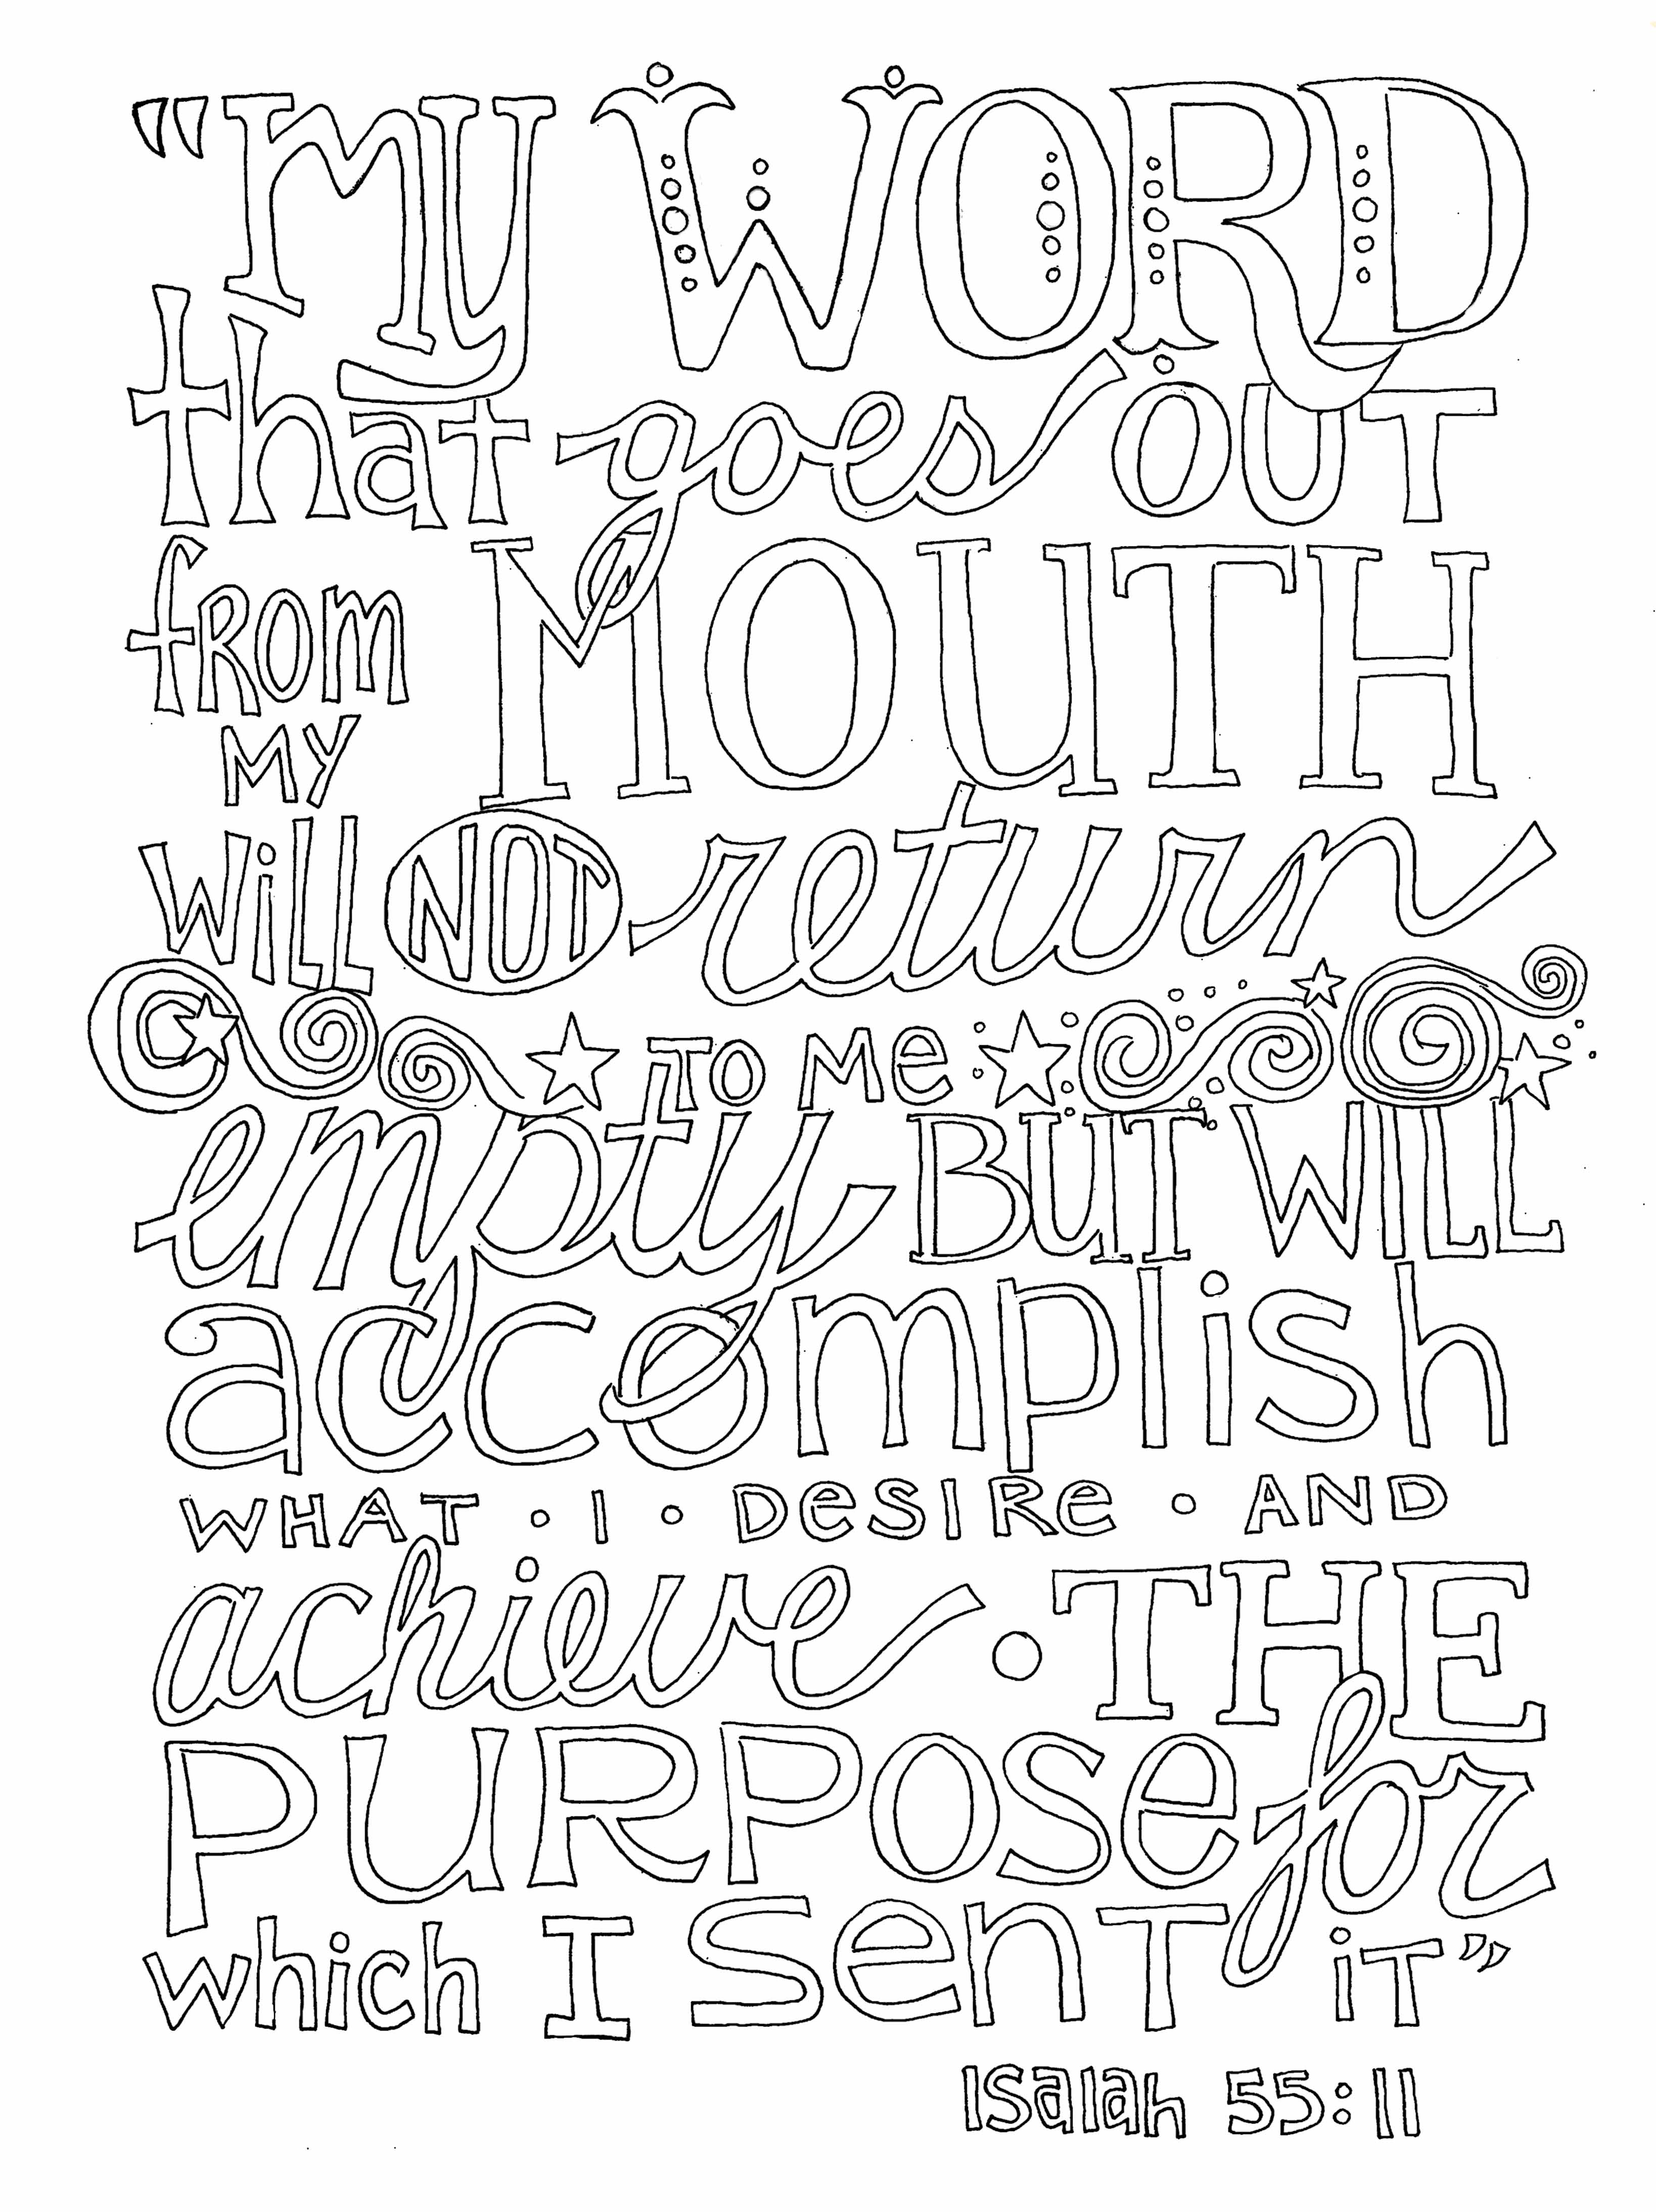 Free Word Art Coloring Page - From Victory Road